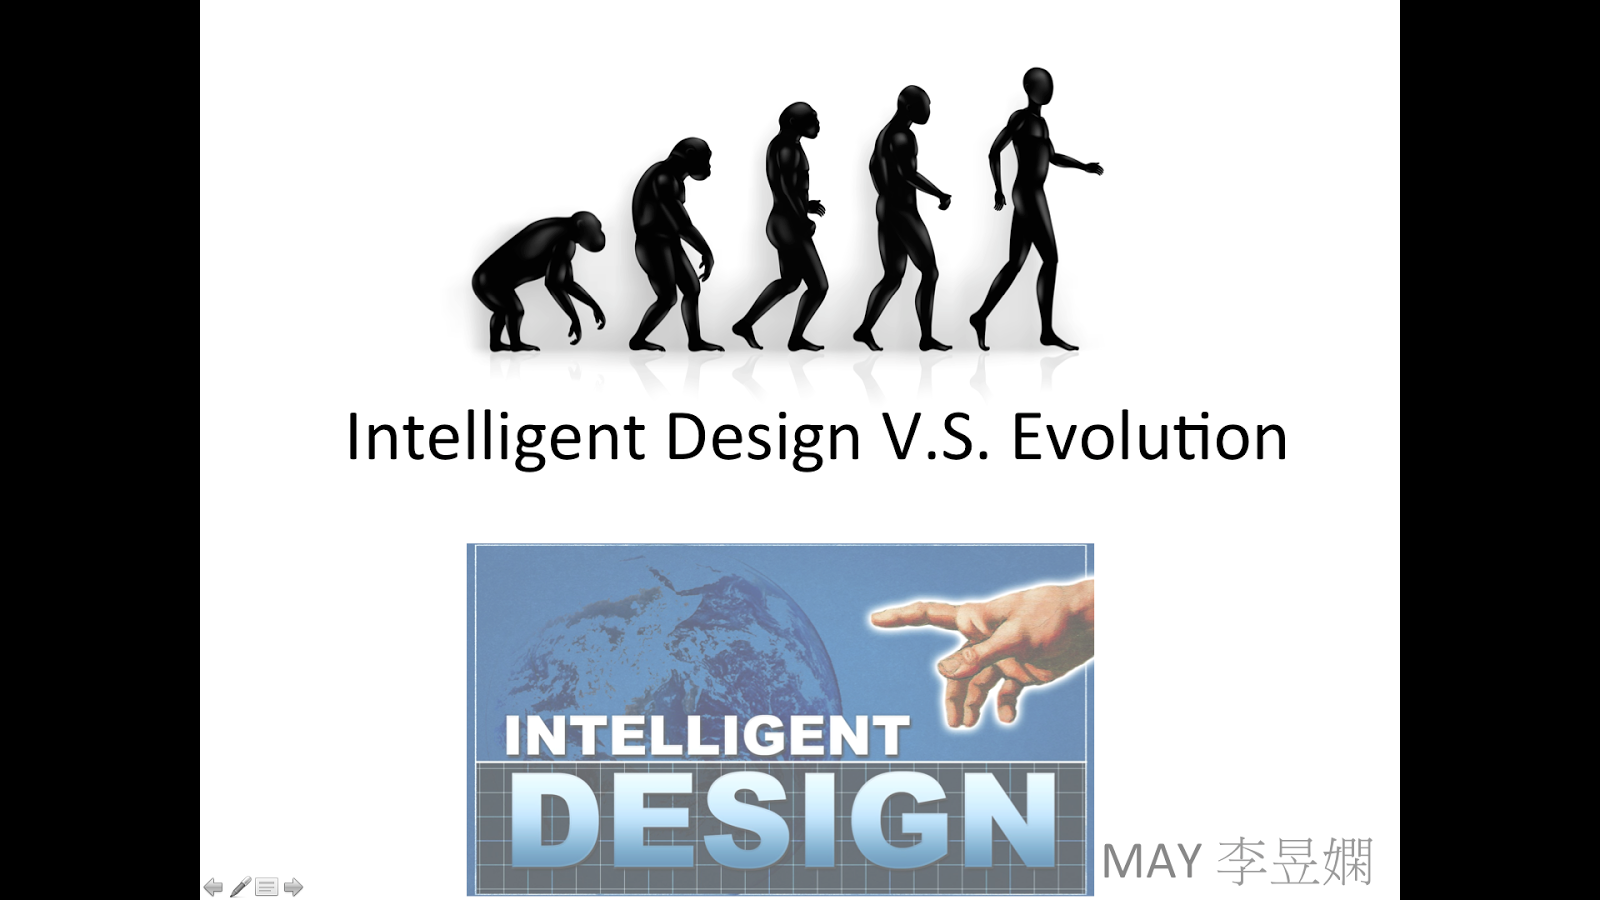 evolution vs intelligent design Special report evolution & intelligent design : part 1 (this page) an ambiguous assault on evolution this trojan horse for creationism has become very popular.